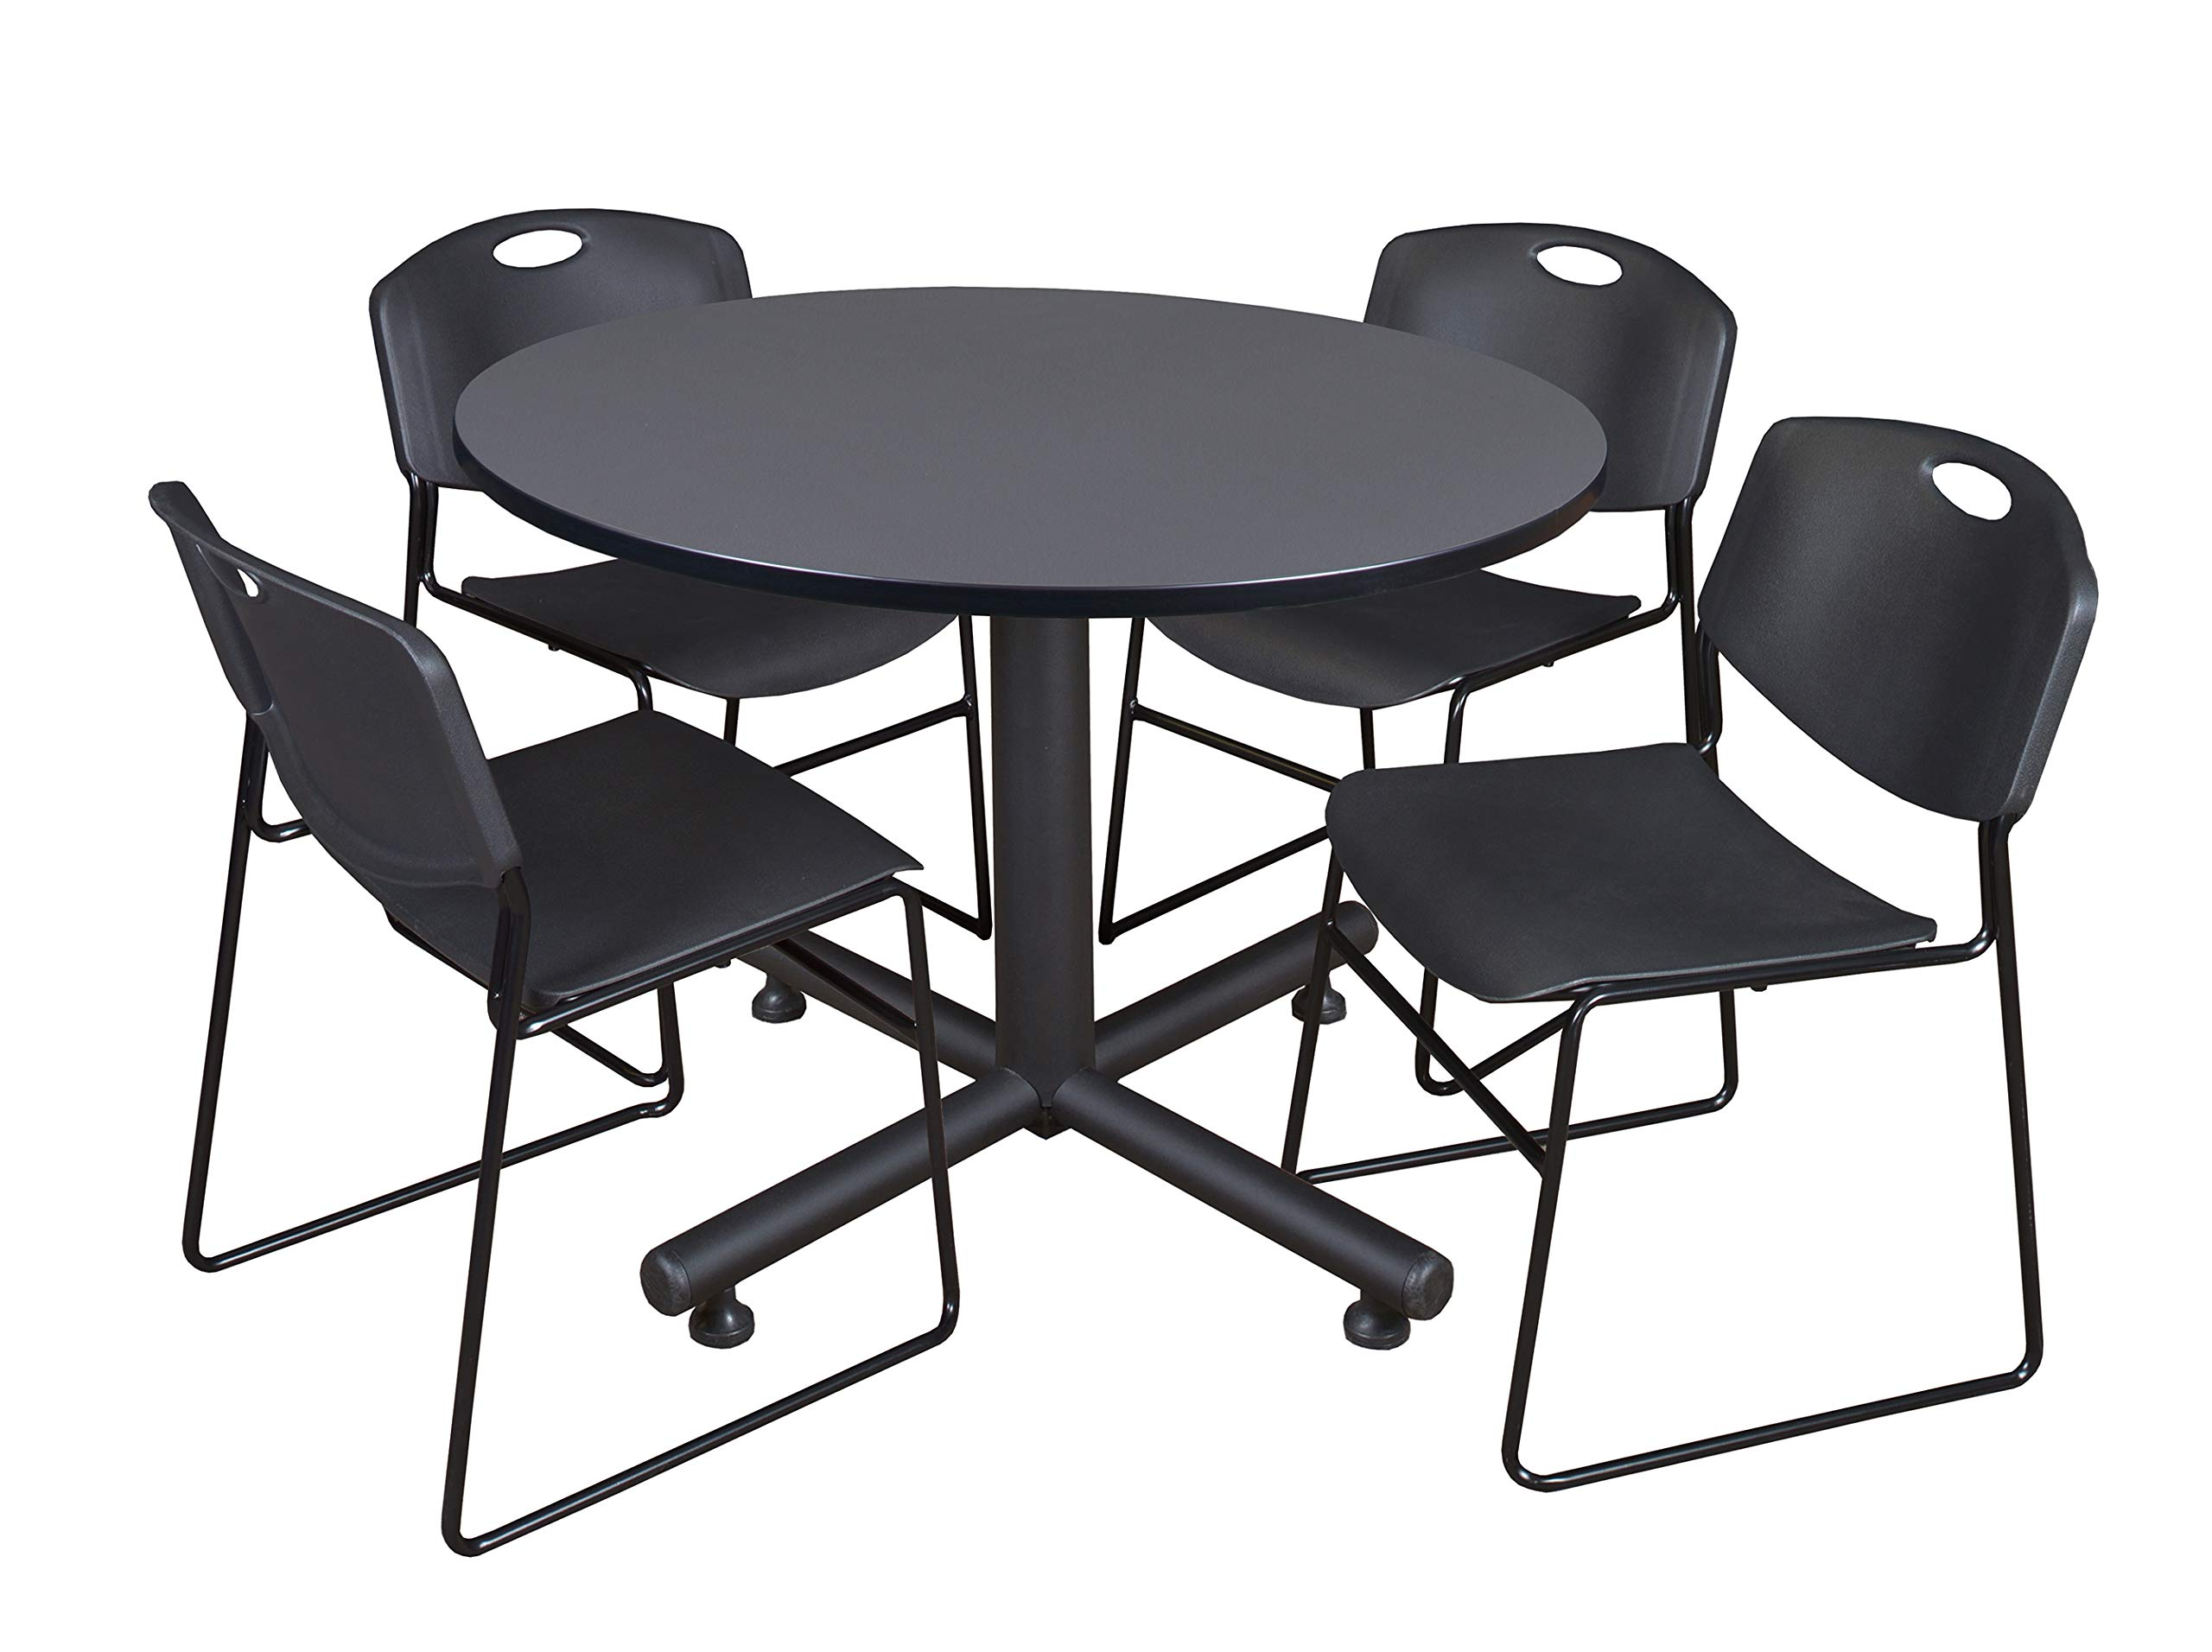 Regency Kobe 48-Inch Round Breakroom Table, Grey, and 4 Zeng Stack Chairs, Black by Regency Seating